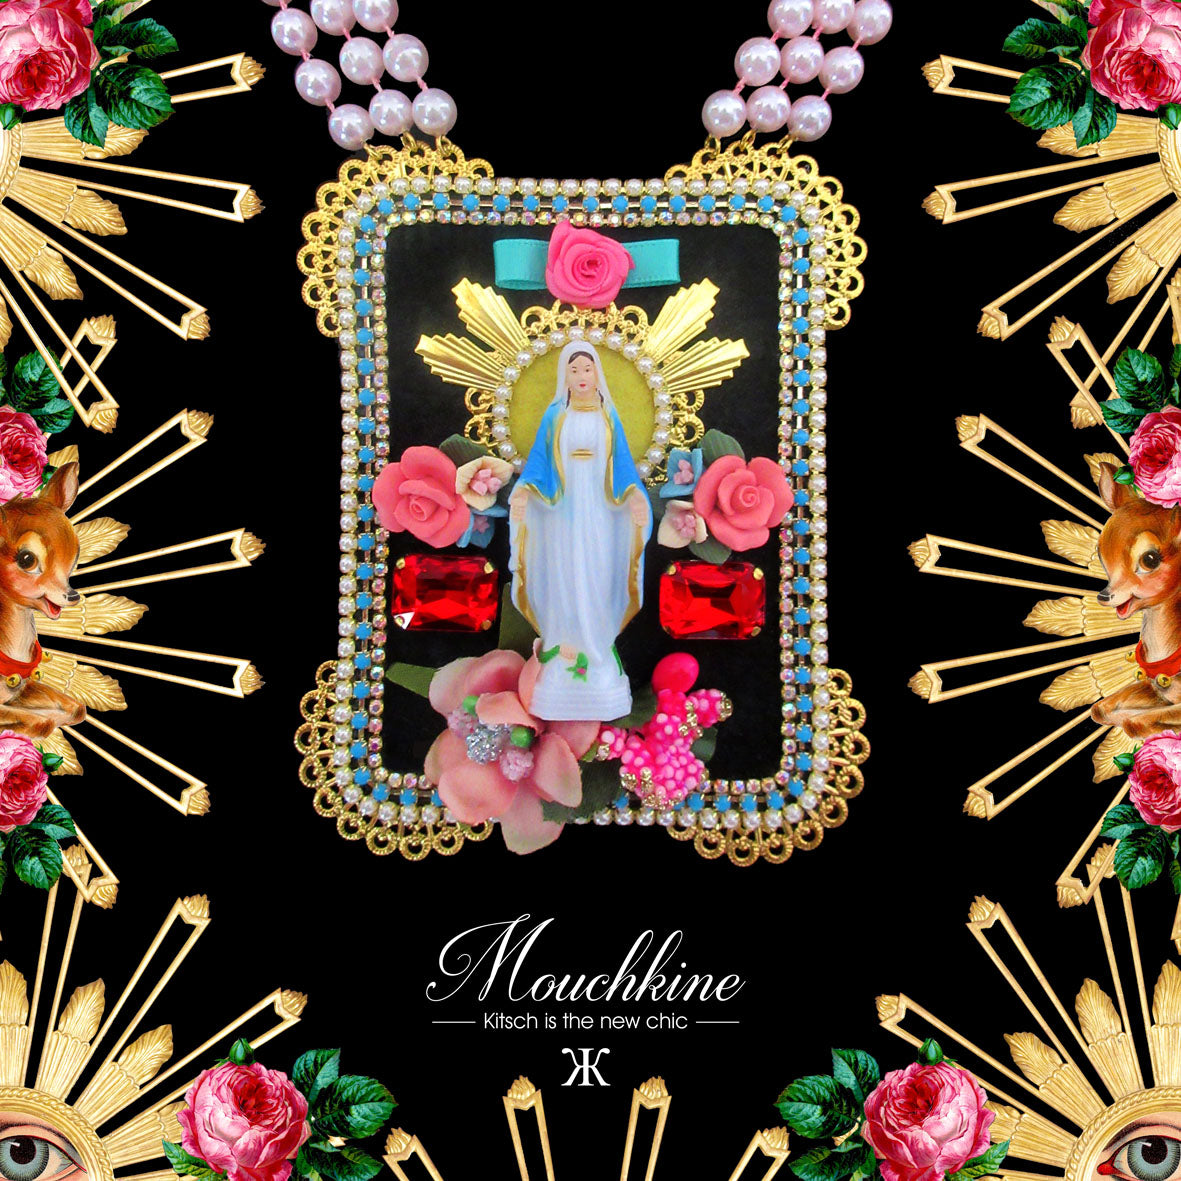 mouchkine jewelry handmade couture kitsch and trendy madonna necklace.